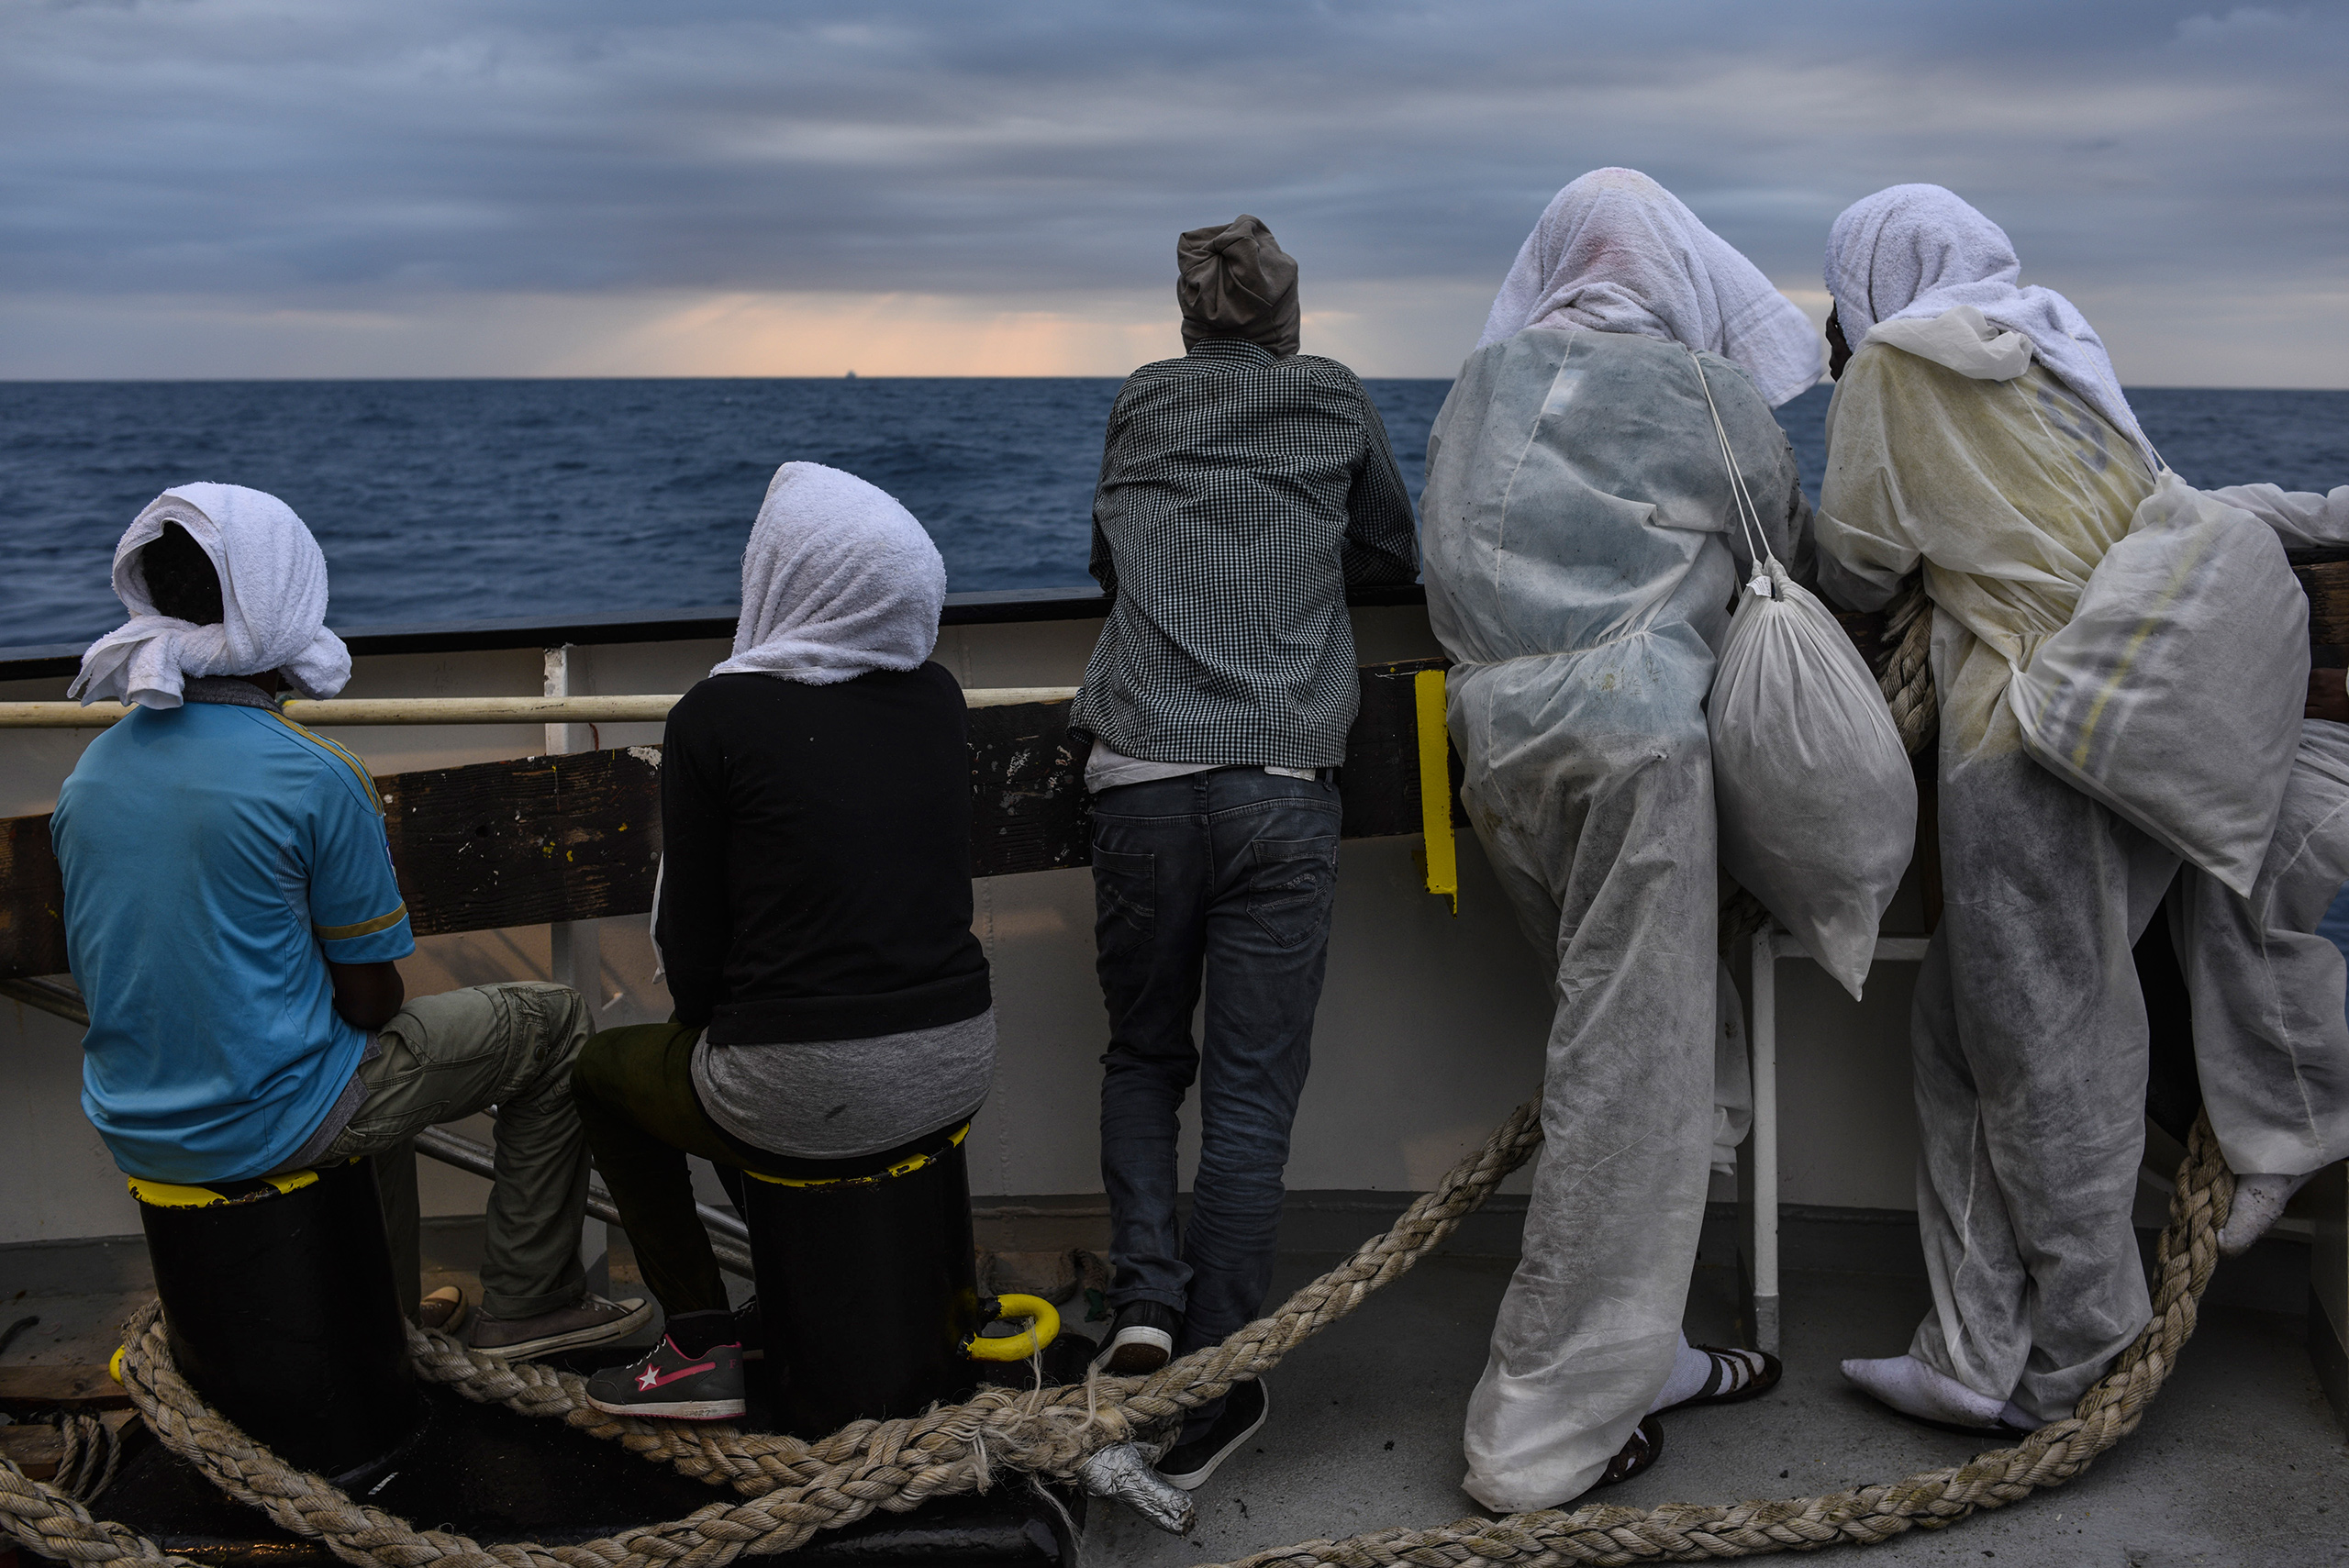 Migrants approaching the coast of Sicily, two days after they were rescued, Aug. 23, 2016.